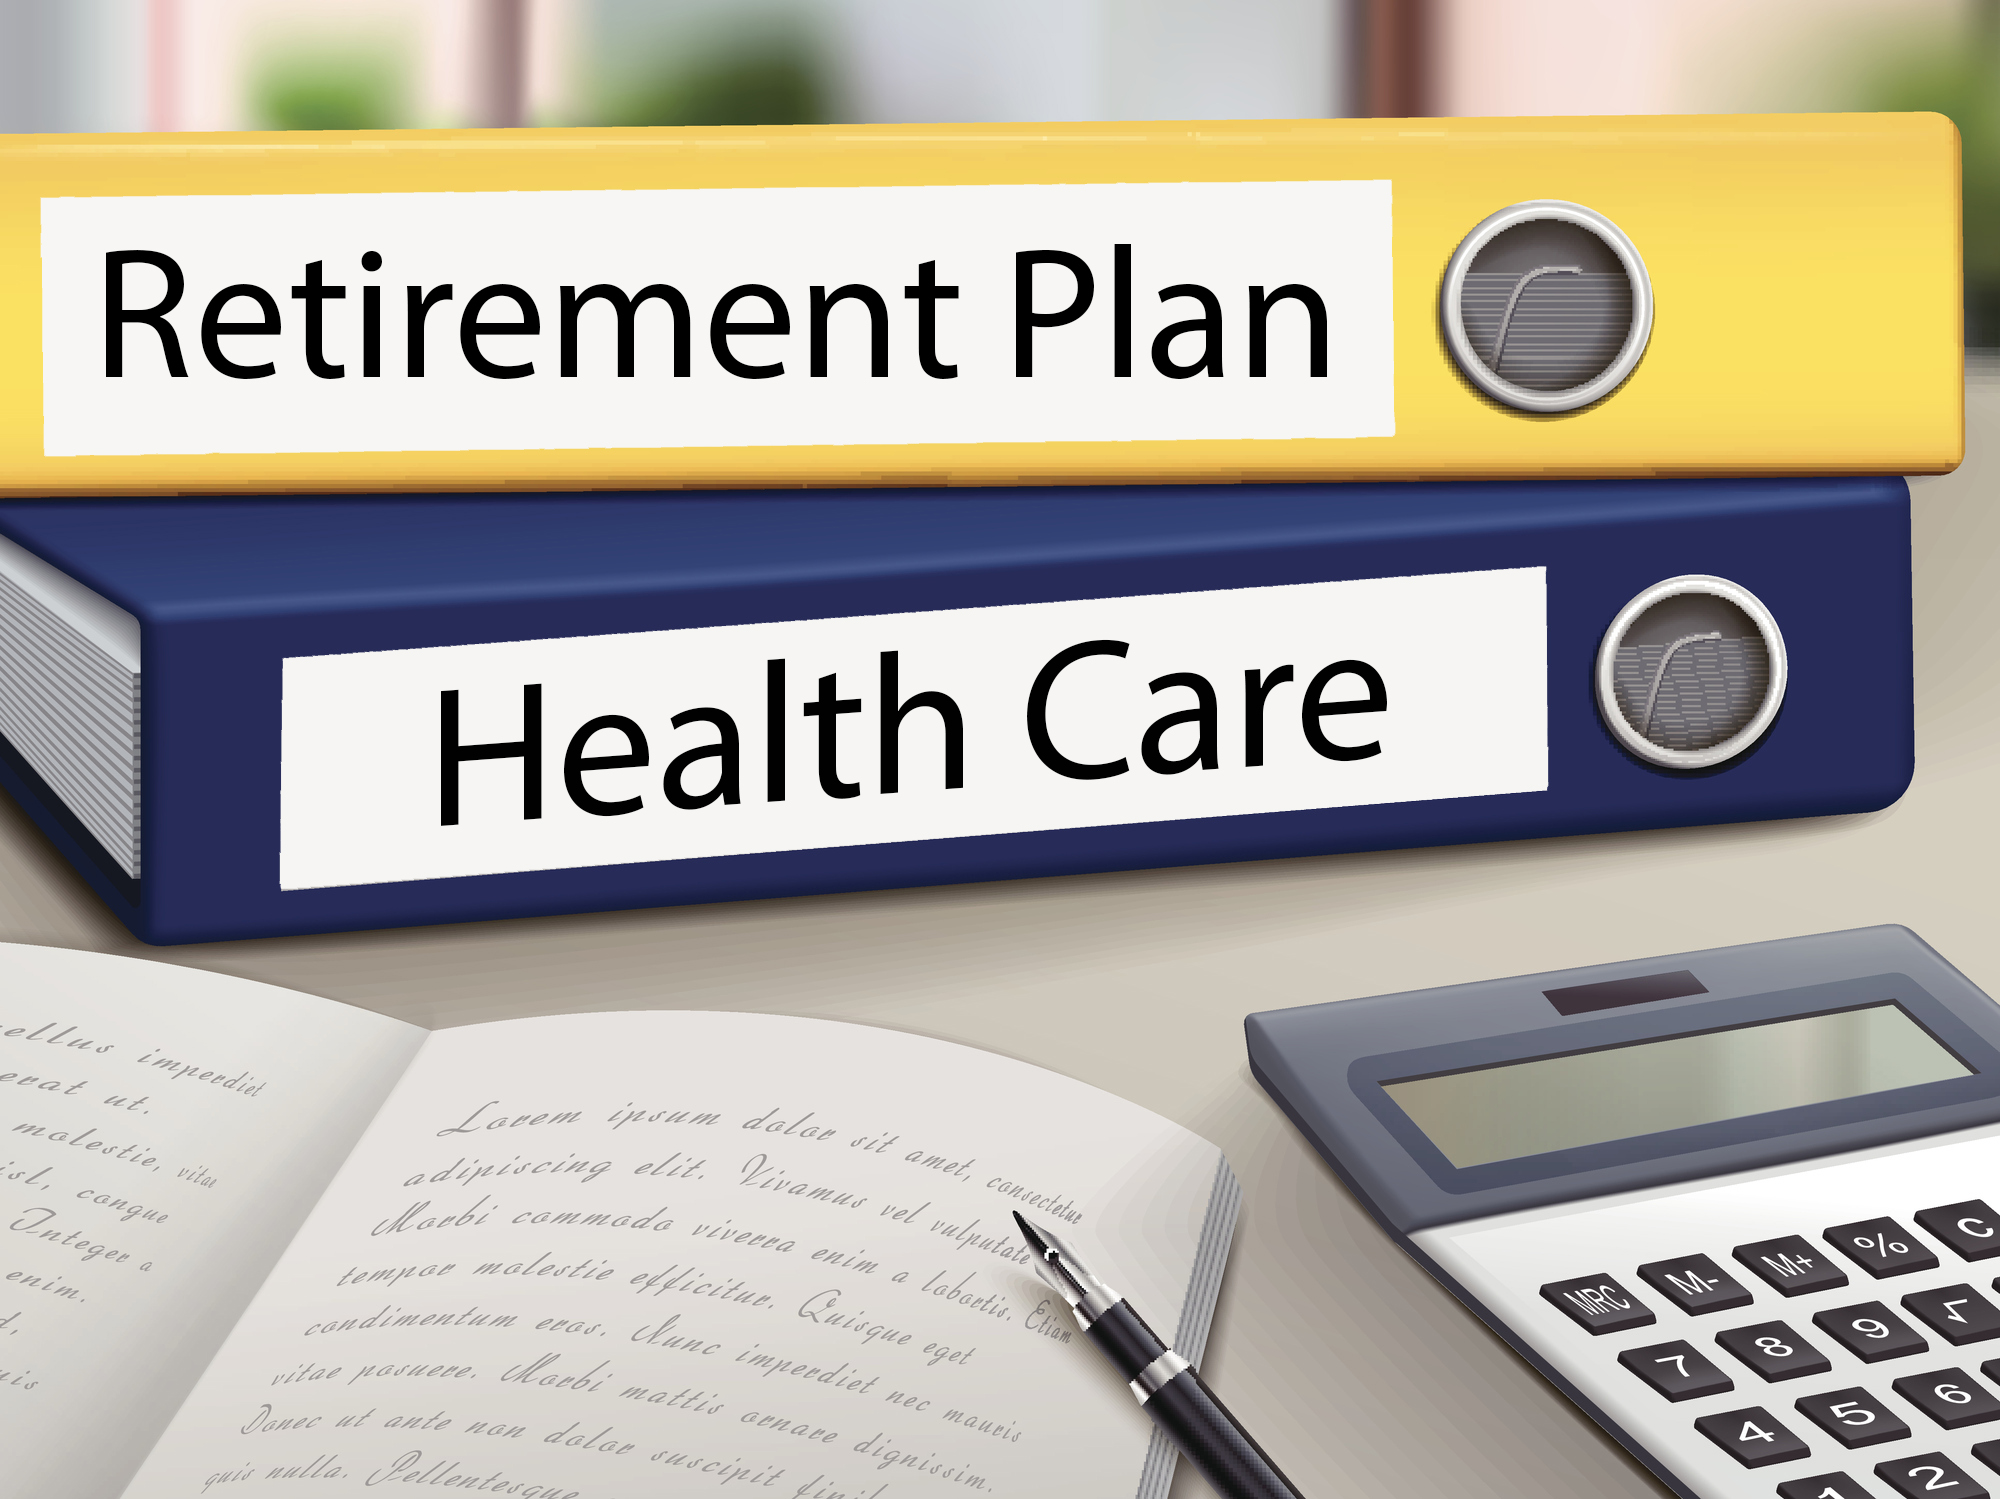 How to qualify for pension, health care - PERSpective